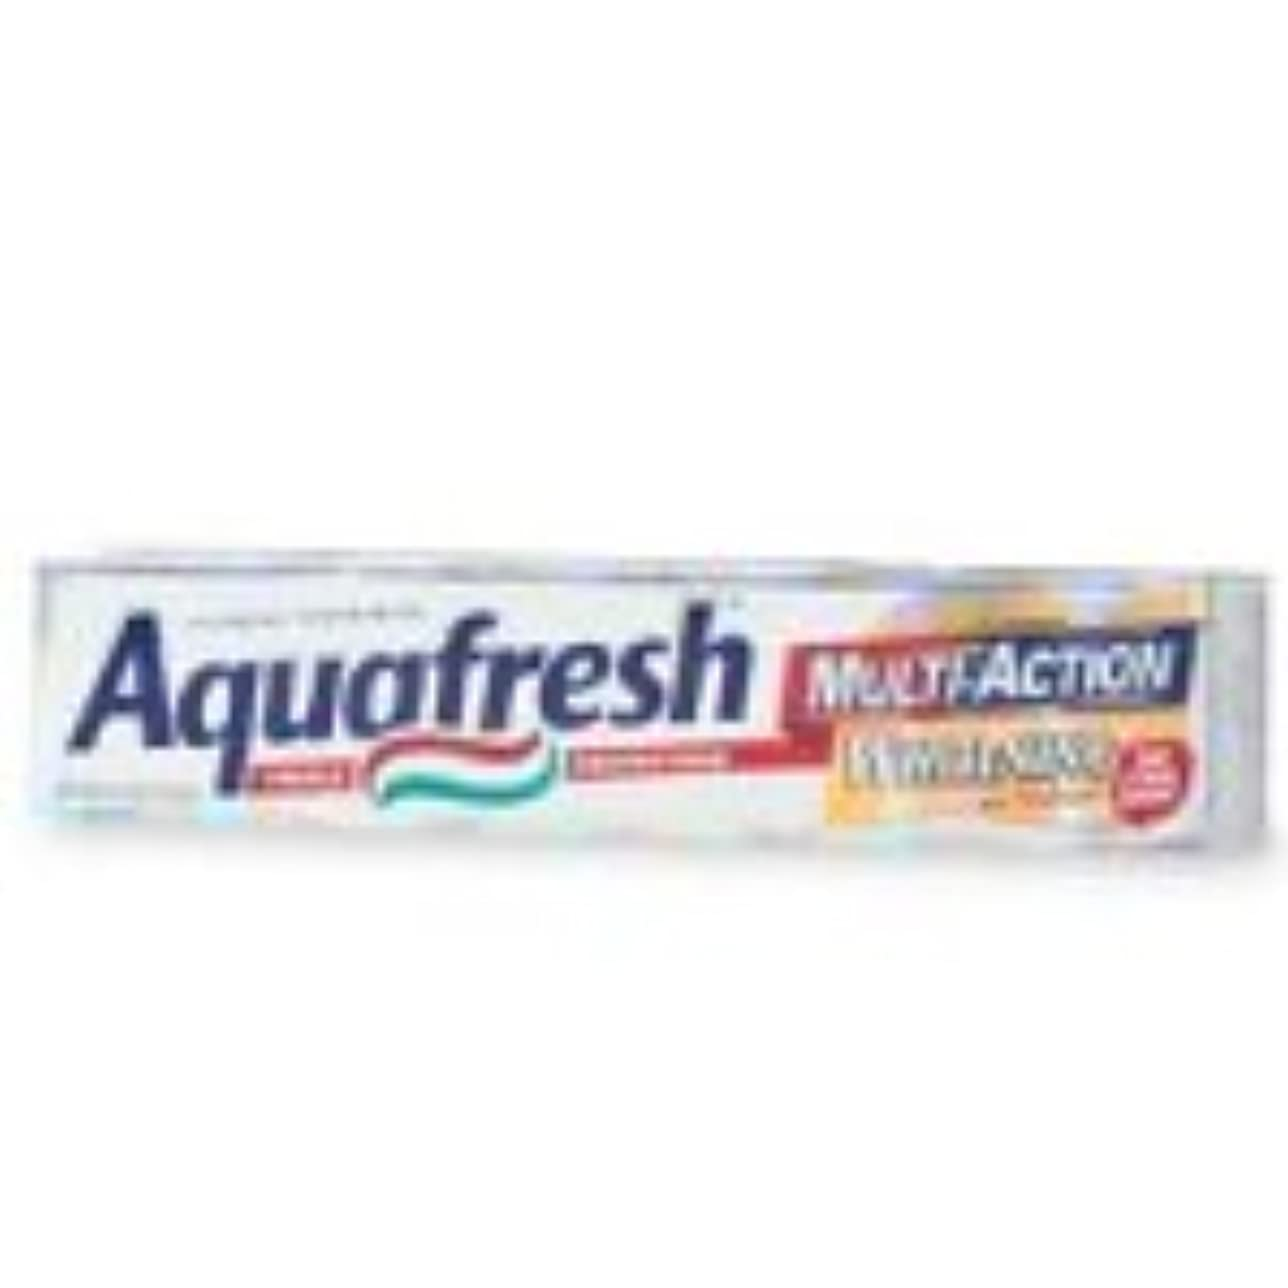 ディプロマ実質的に気絶させる海外直送品Aquafresh Aquafresh Ultimate White With Enhanced Whitening Action Toothpaste, 6 oz